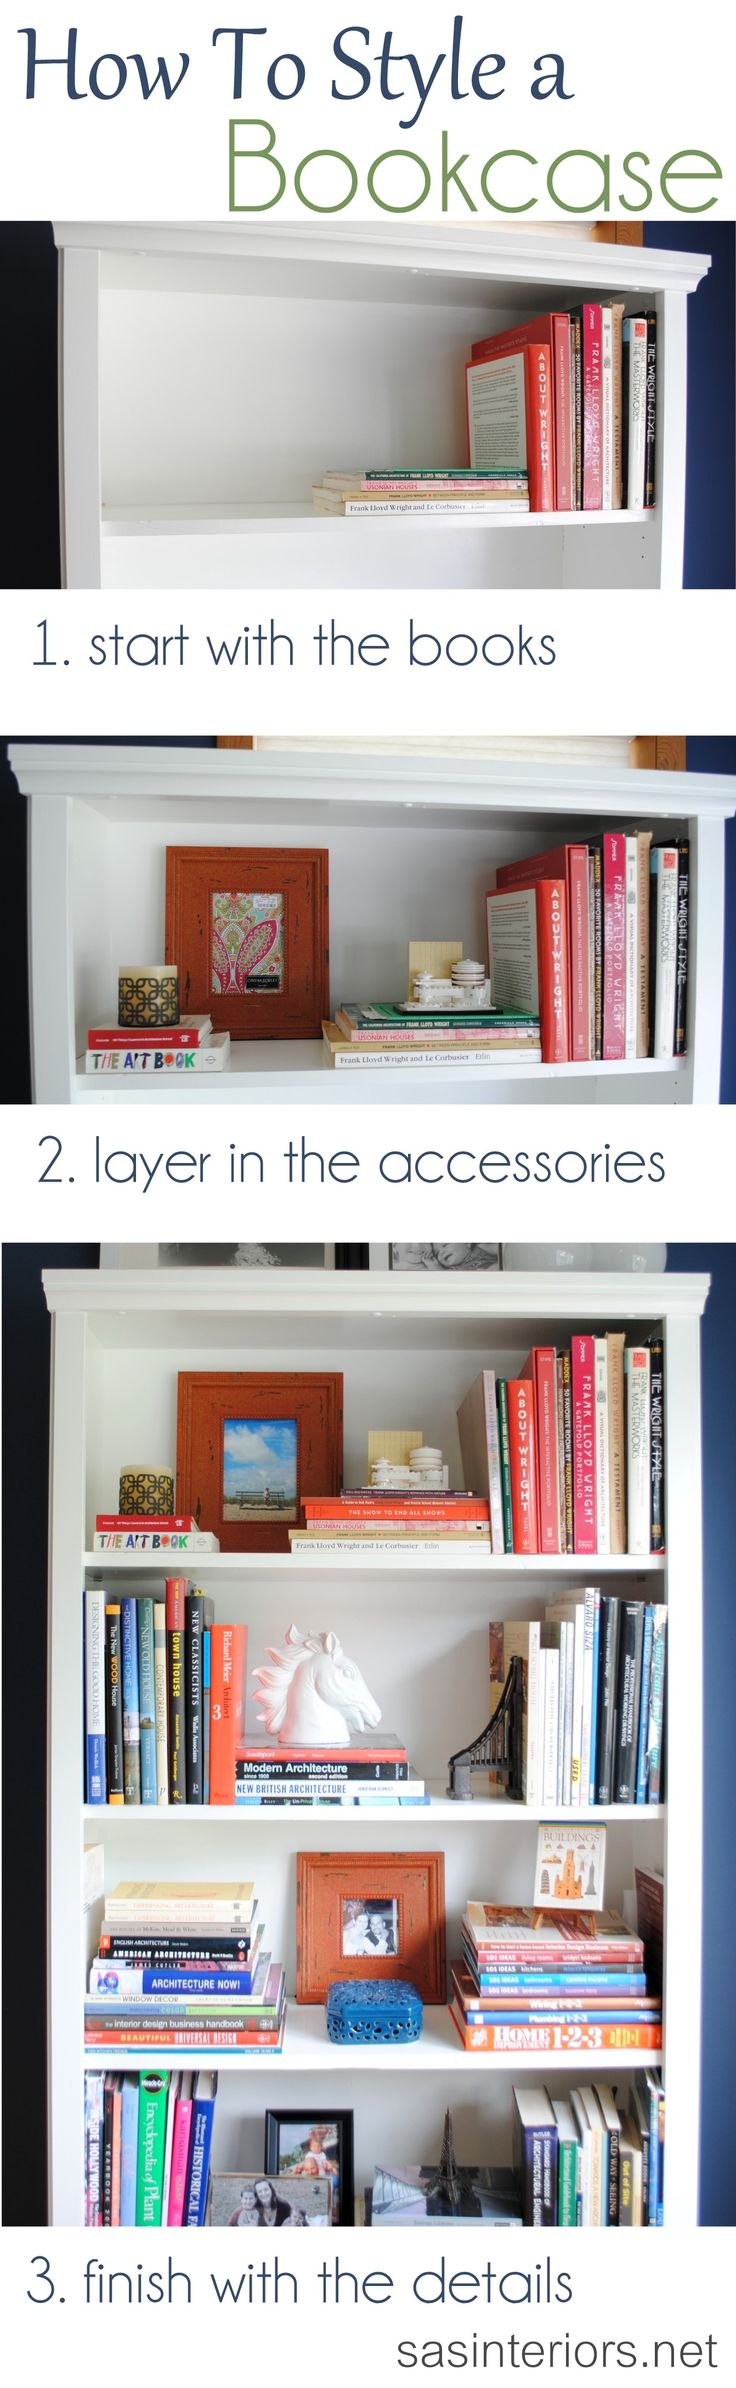 A breakdown on how-to style a bookcase. Inspiration tips and ideas on how and where to begin accessorizing a bookcase or shelf in your home by @Jenna_Burger #styling #decoratingBookshelves, Living Rooms, Bookcases Style, Decor Ideas, How To Style Bookcases, Bookcase Styling, Book Shelves, How To Organic Your Bedrooms, Howto Style